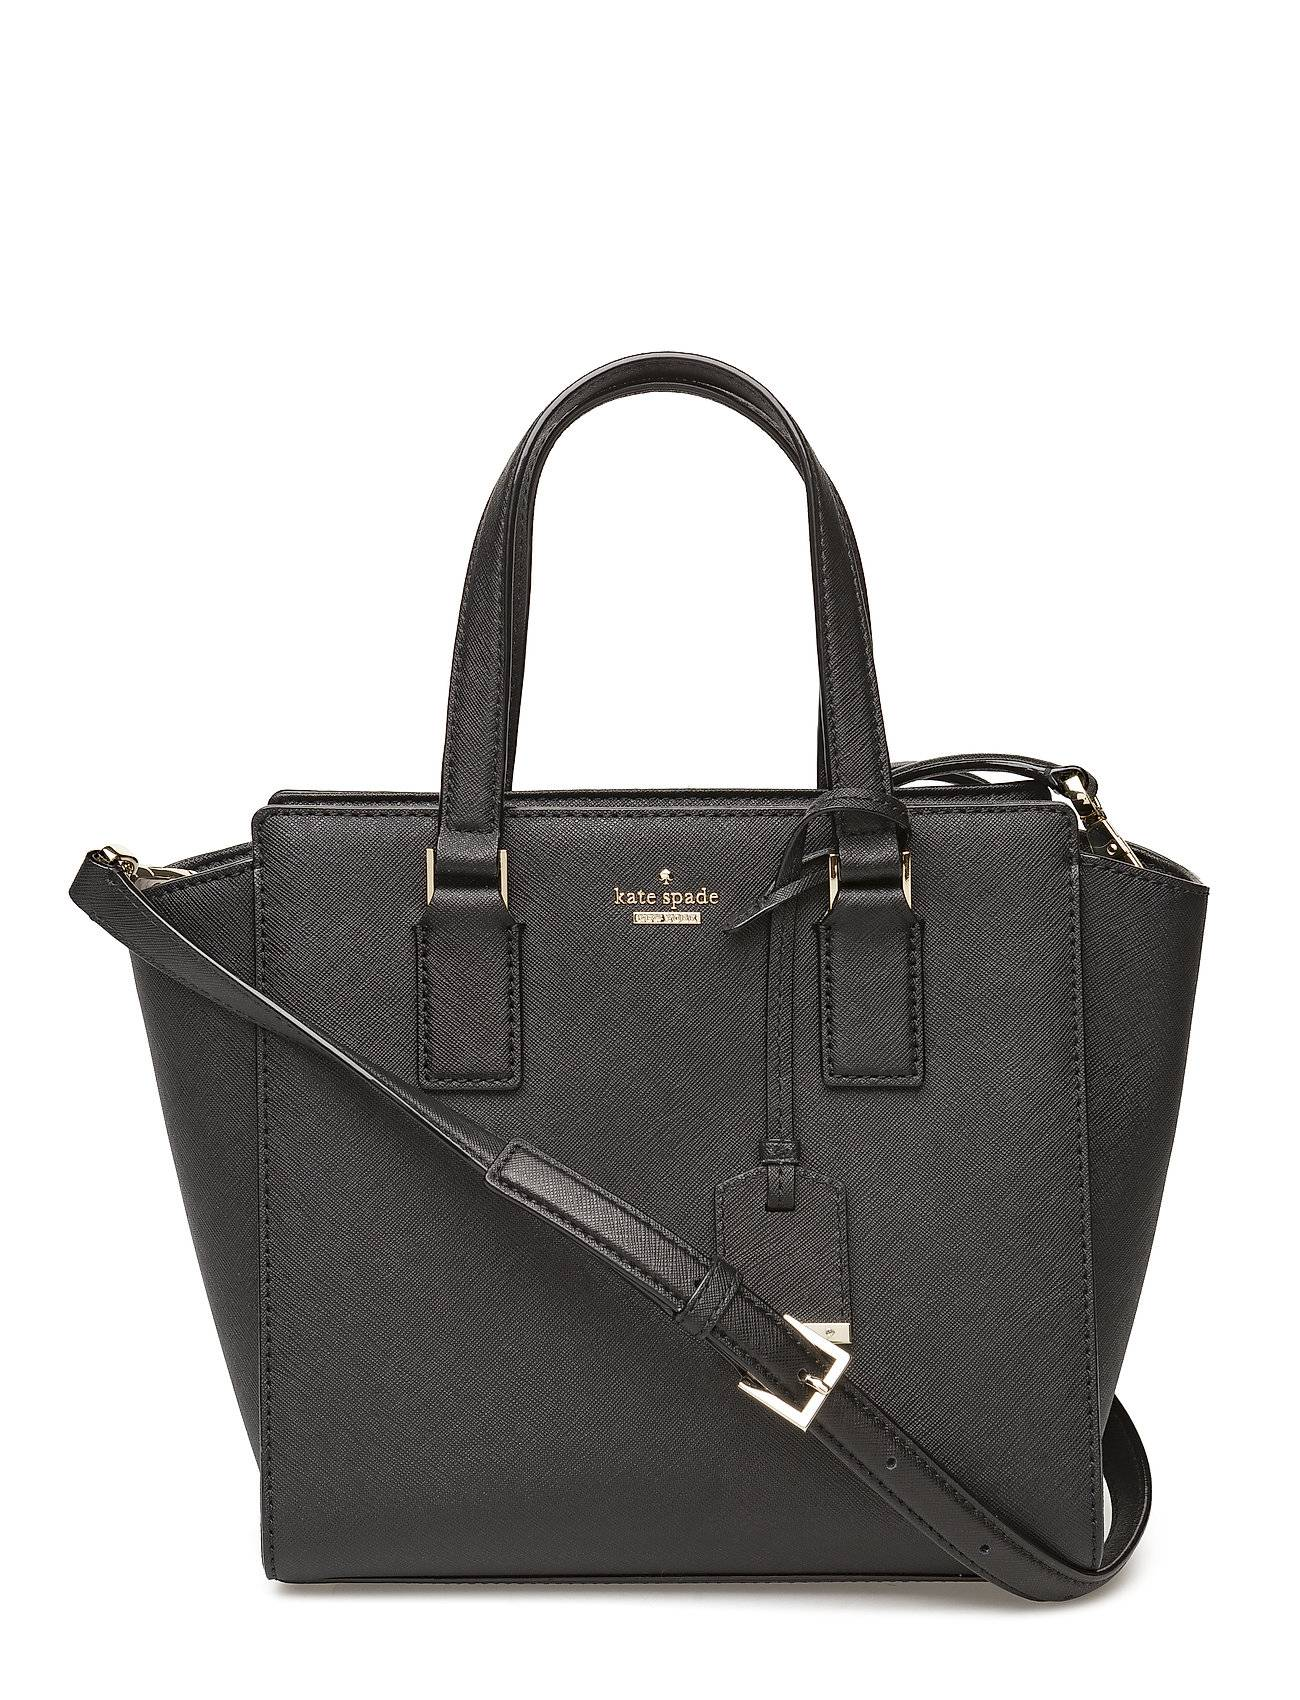 Kate Spade New York Cameron Street Small Hayden